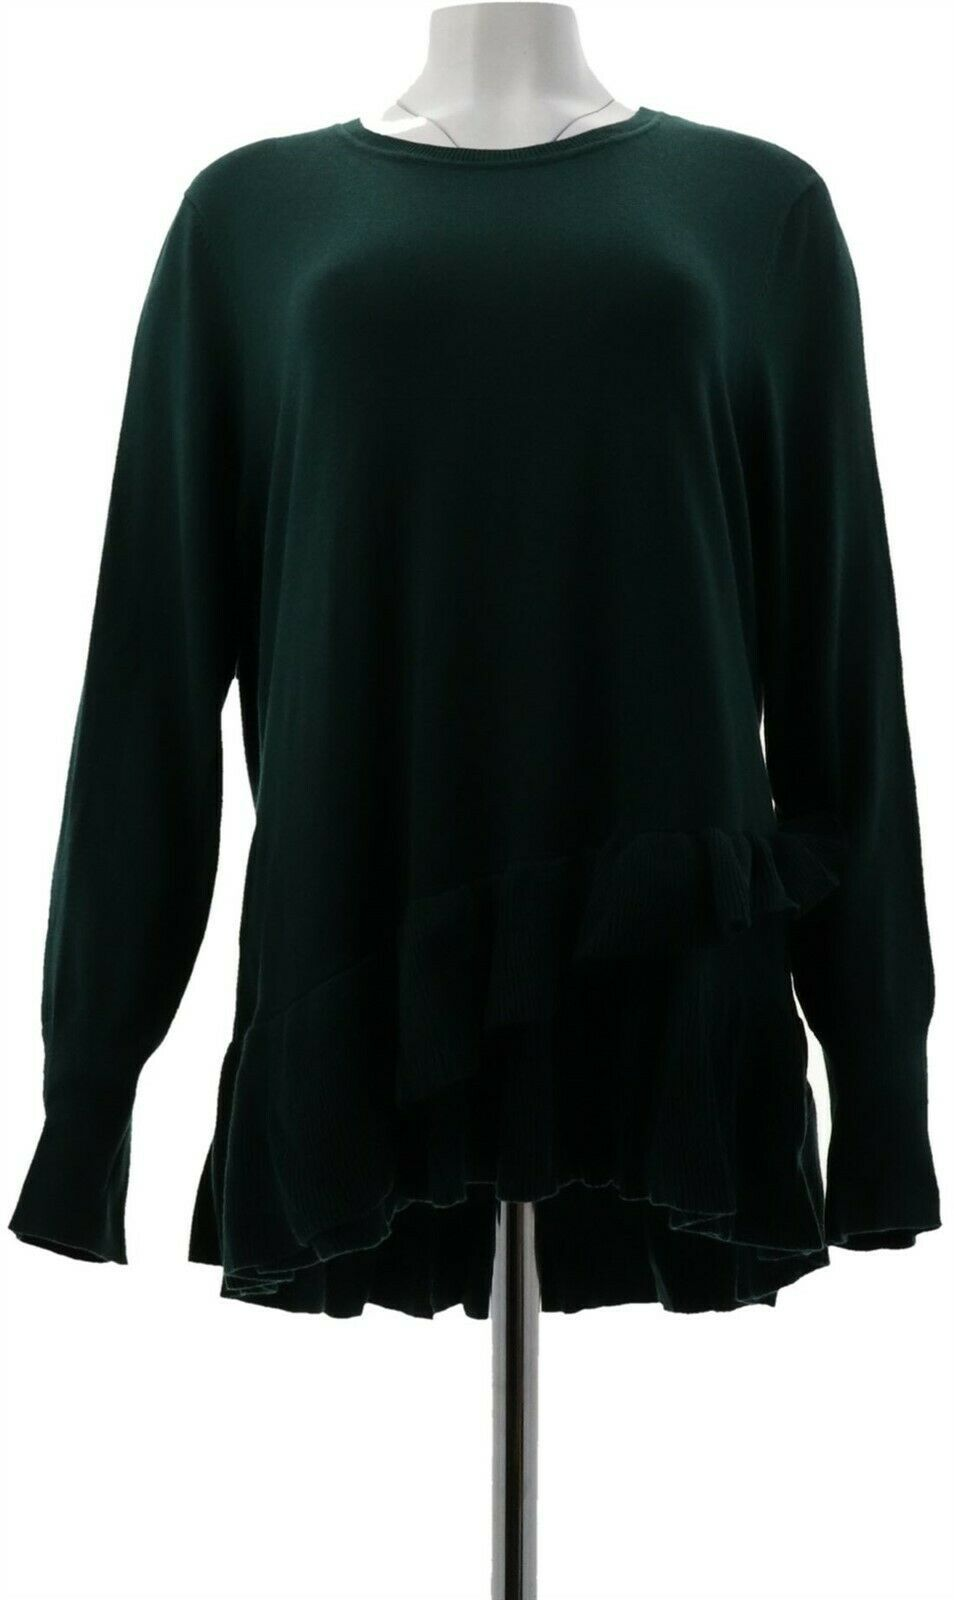 Primary image for Isaac Mizrahi Crossover Ruffle Peplum Sweater Fir Green M NEW A298791